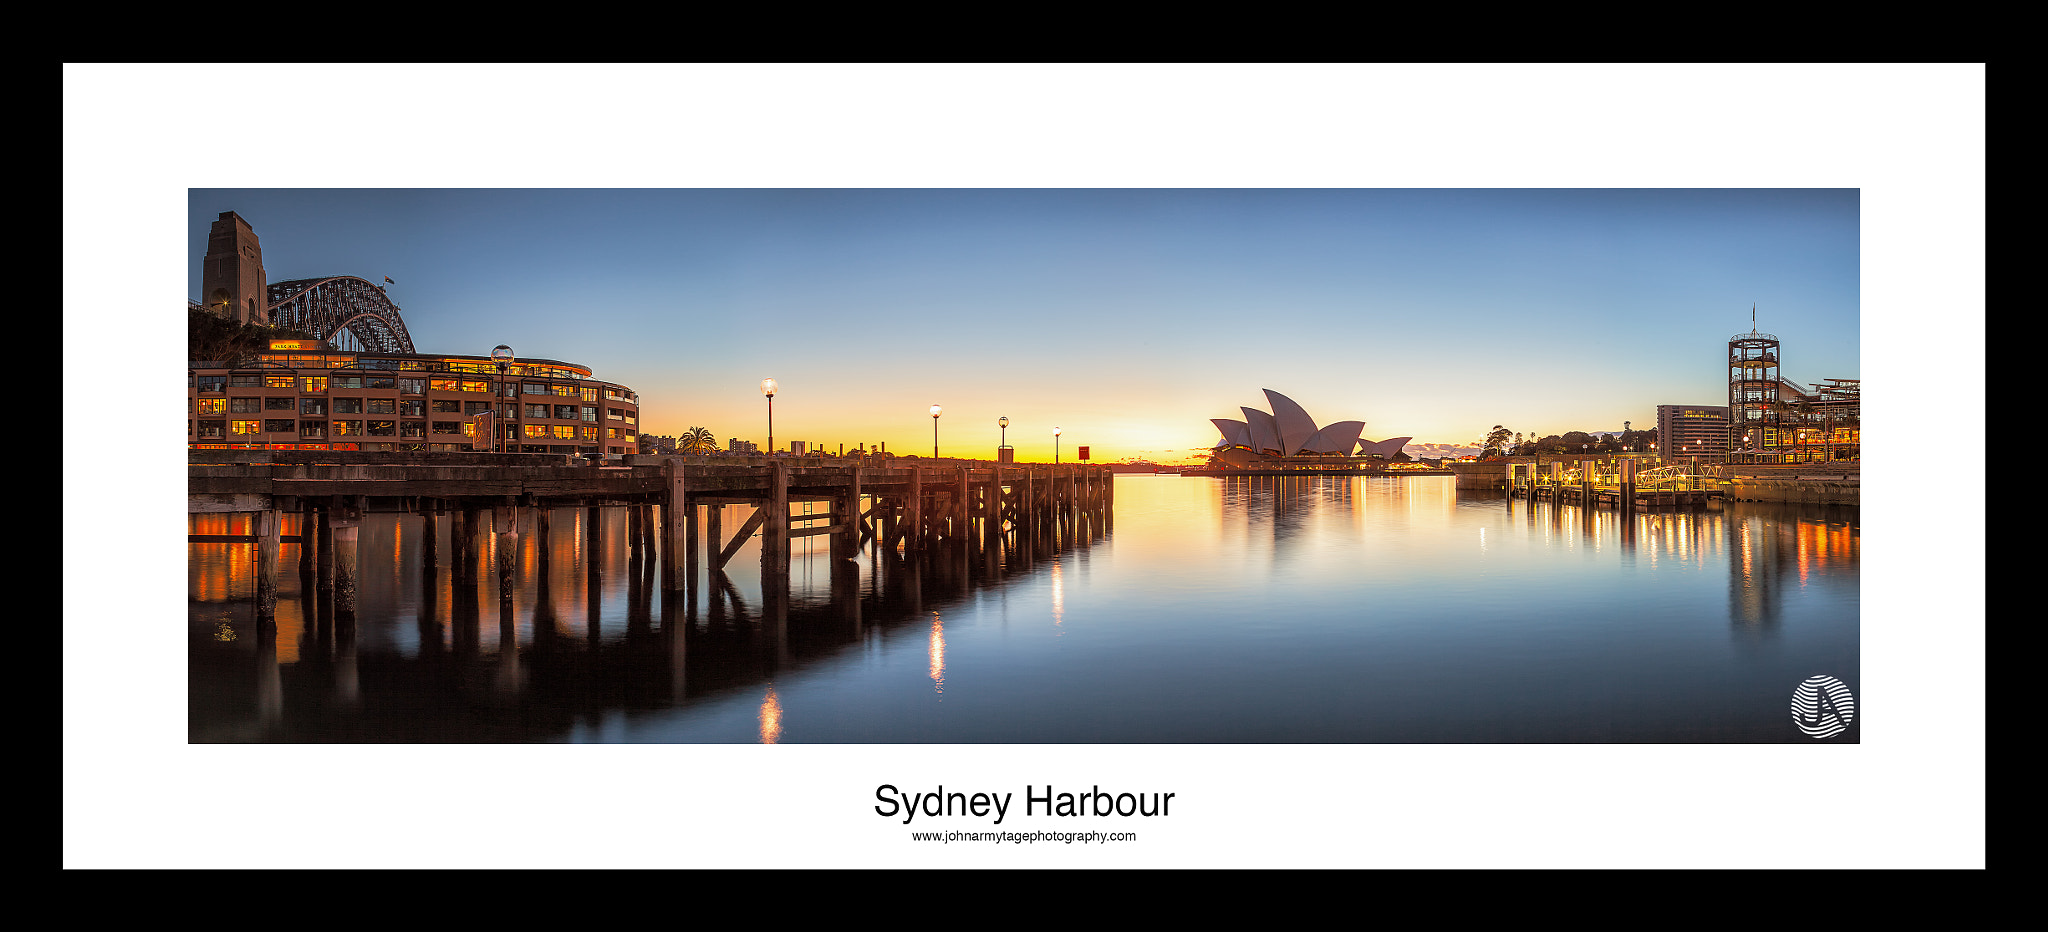 Photograph Sydney Harbour by John Armytage on 500px